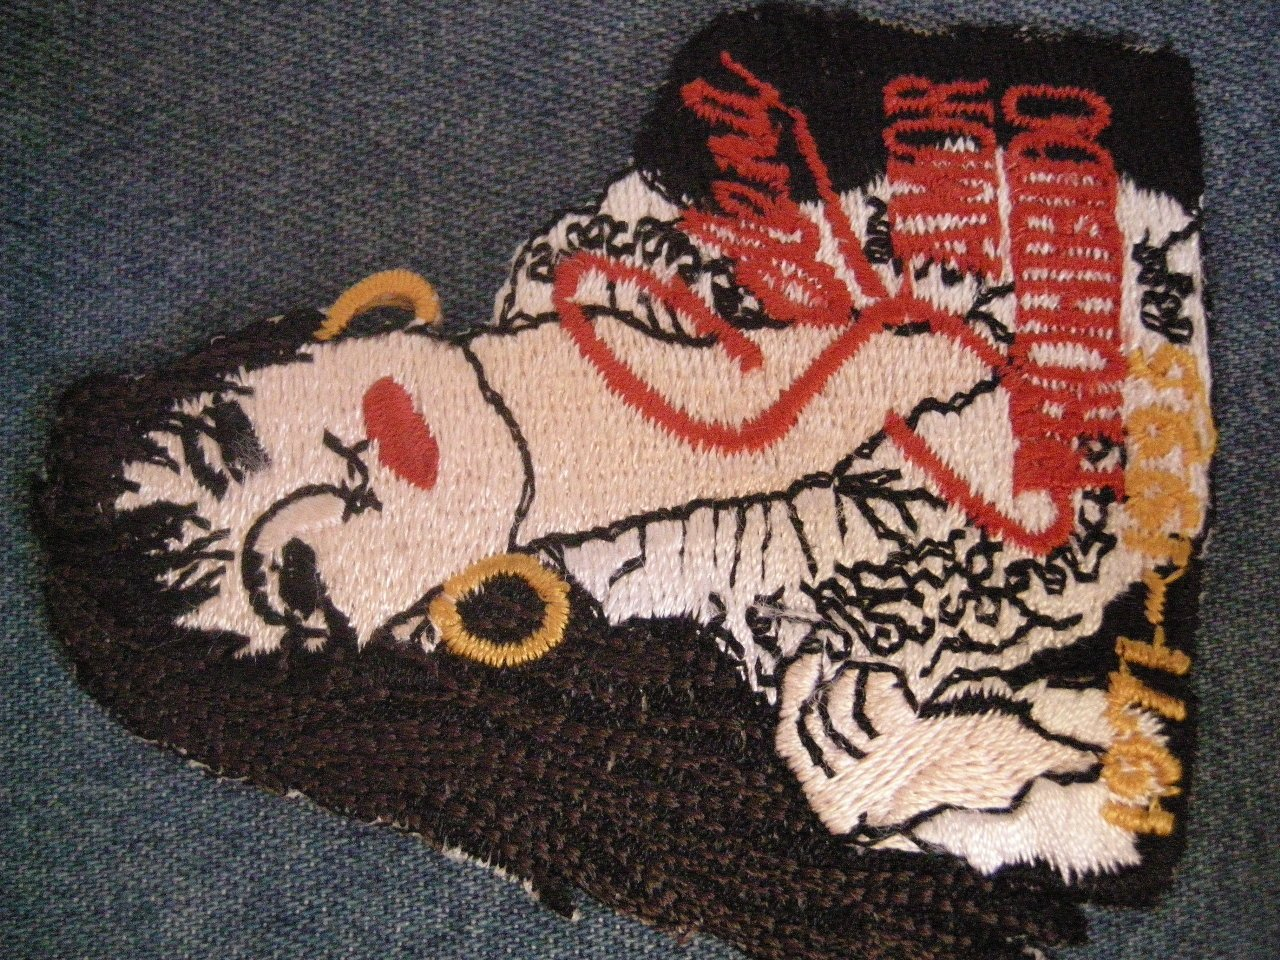 SELENA iron-on PATCH Amor Prohibito 1971-1995 latin RARE VINTAGE